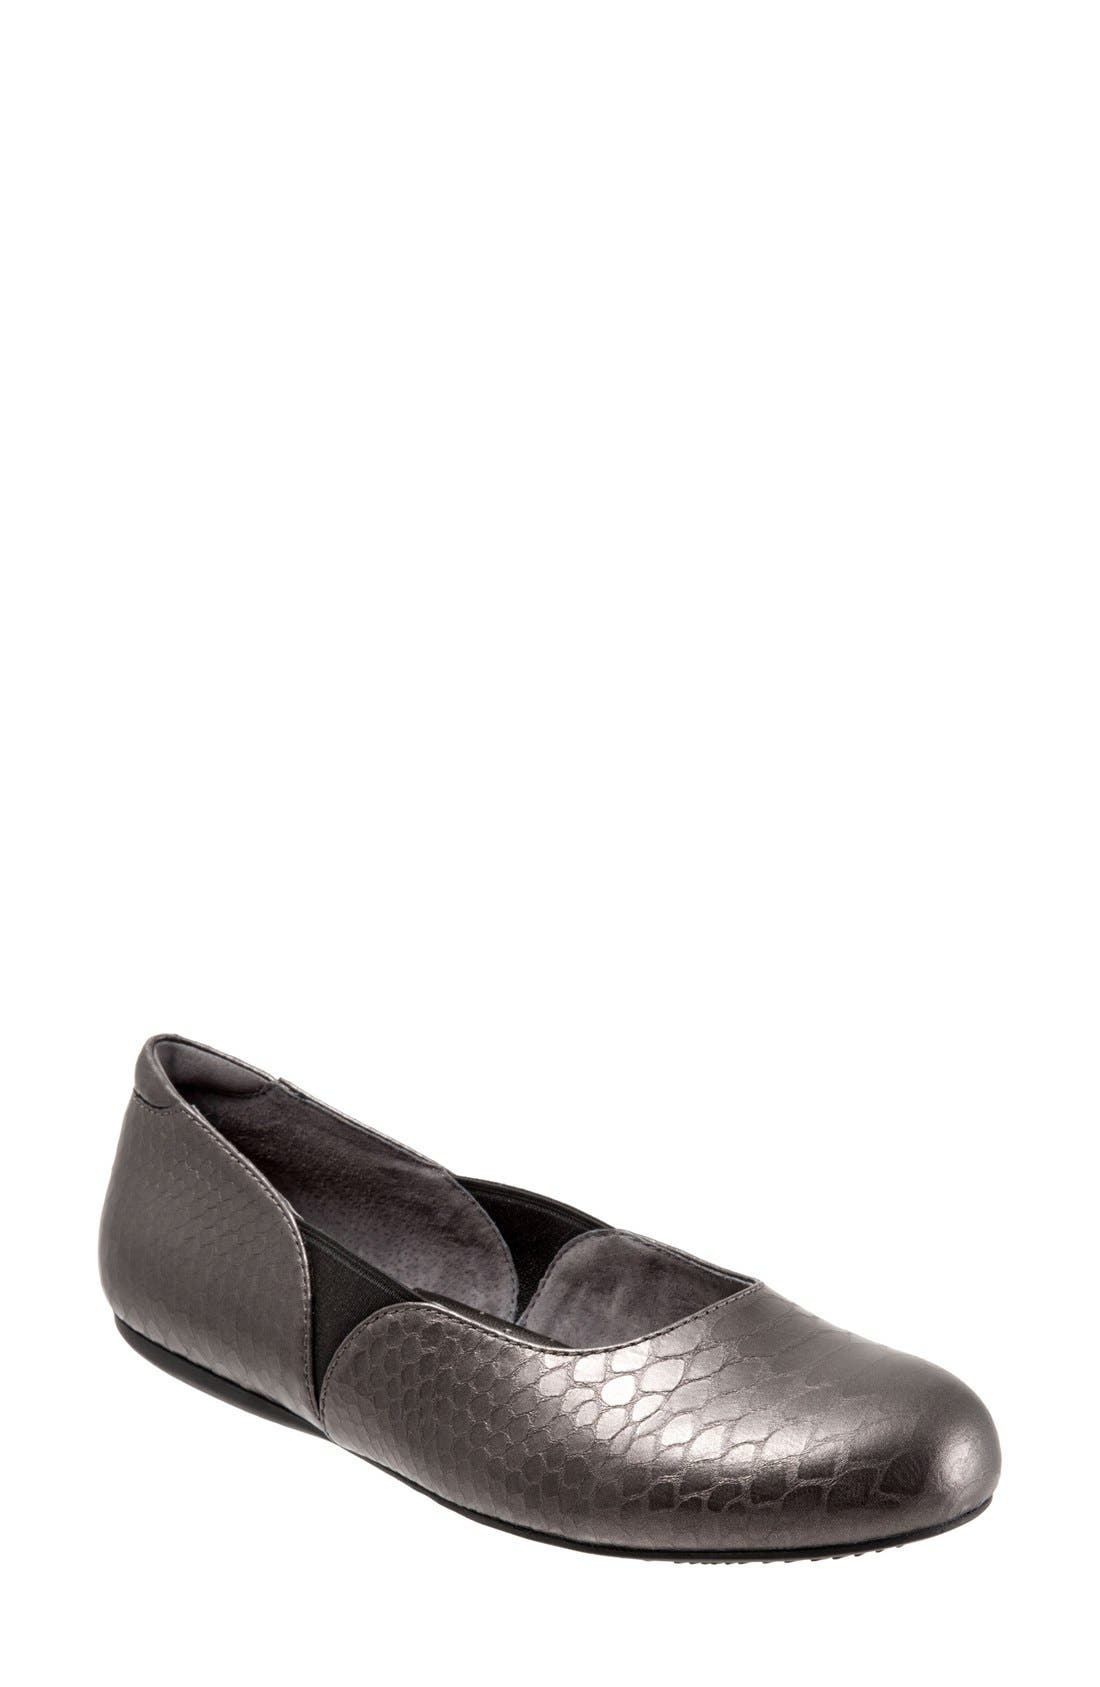 'Norwich' Flat,                         Main,                         color, Pewter Snake Leather